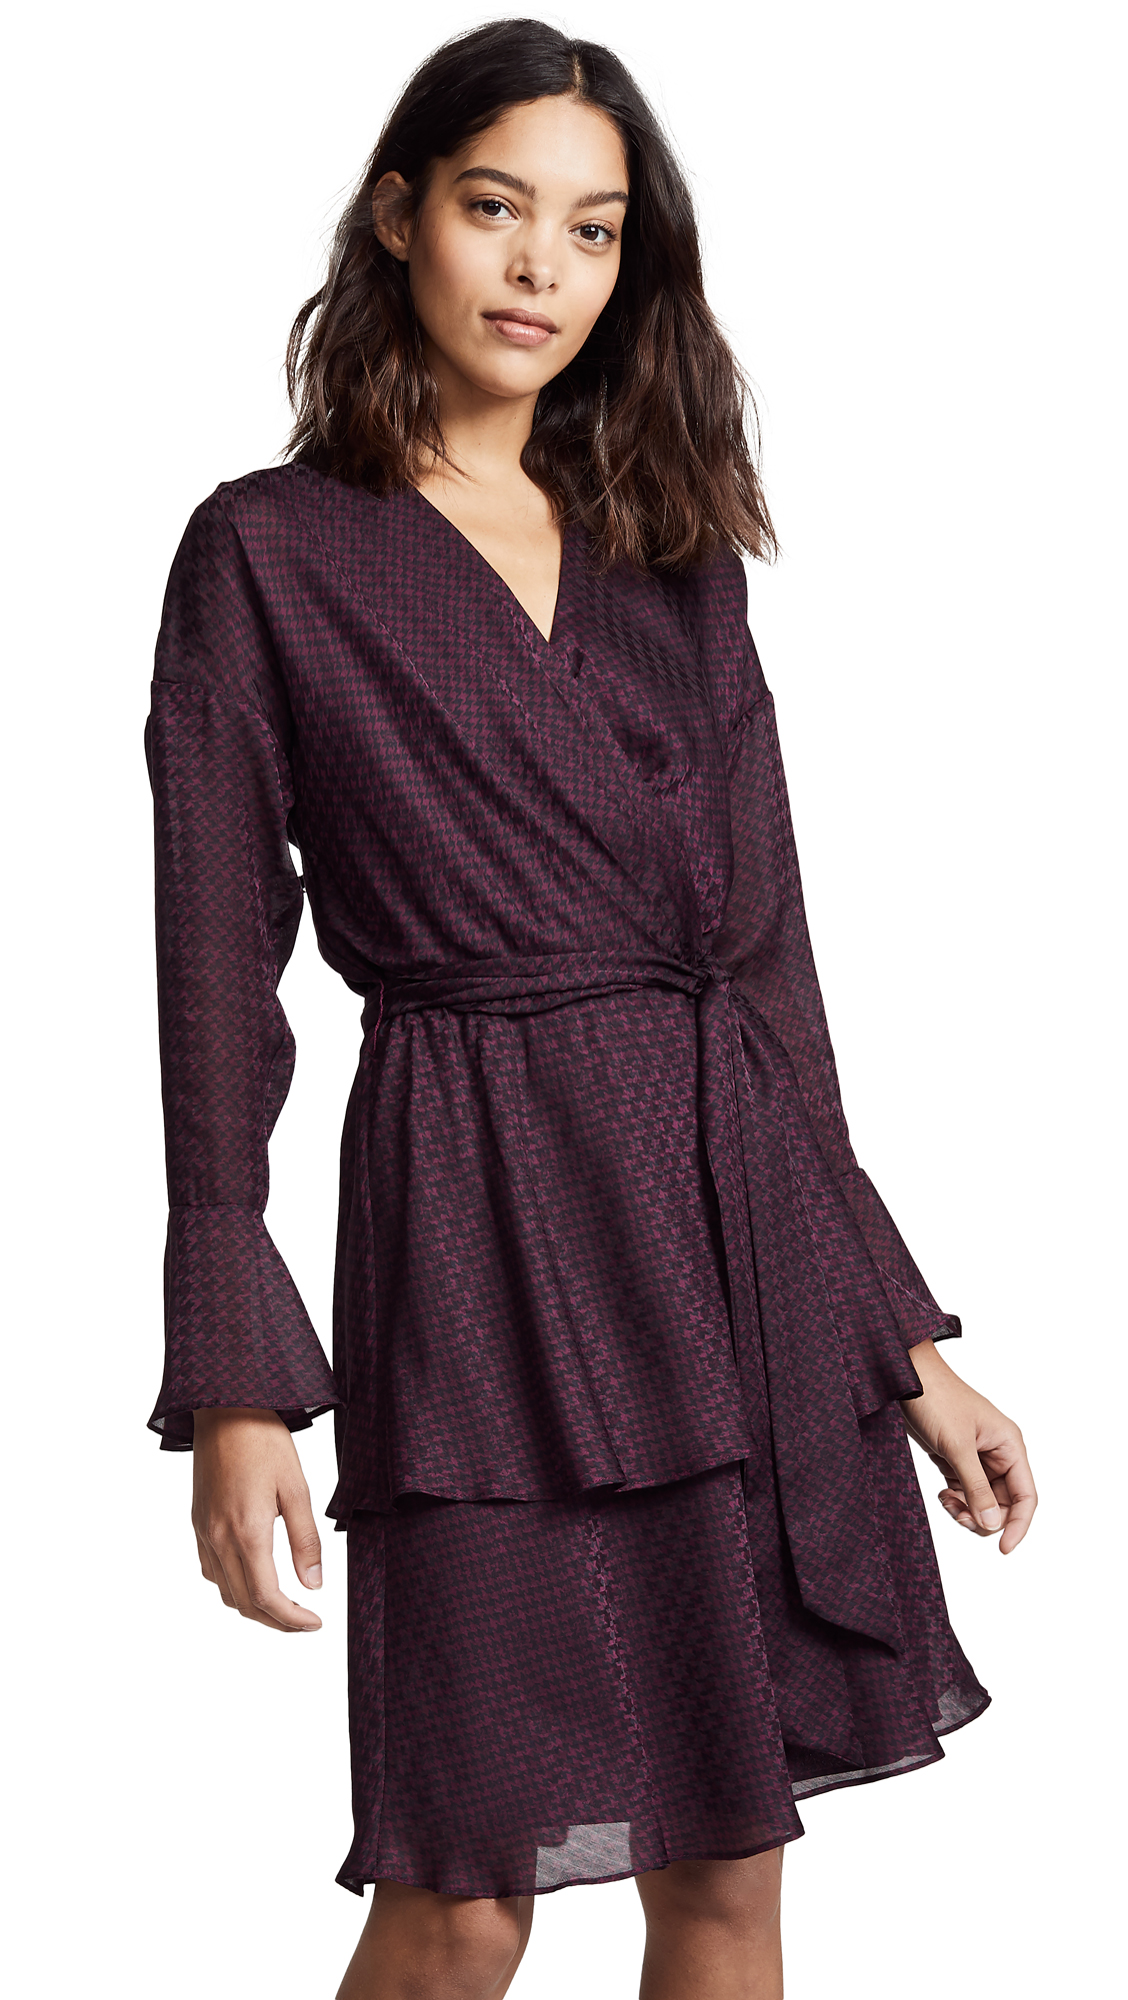 Joie Marcel Dress - Blackberry